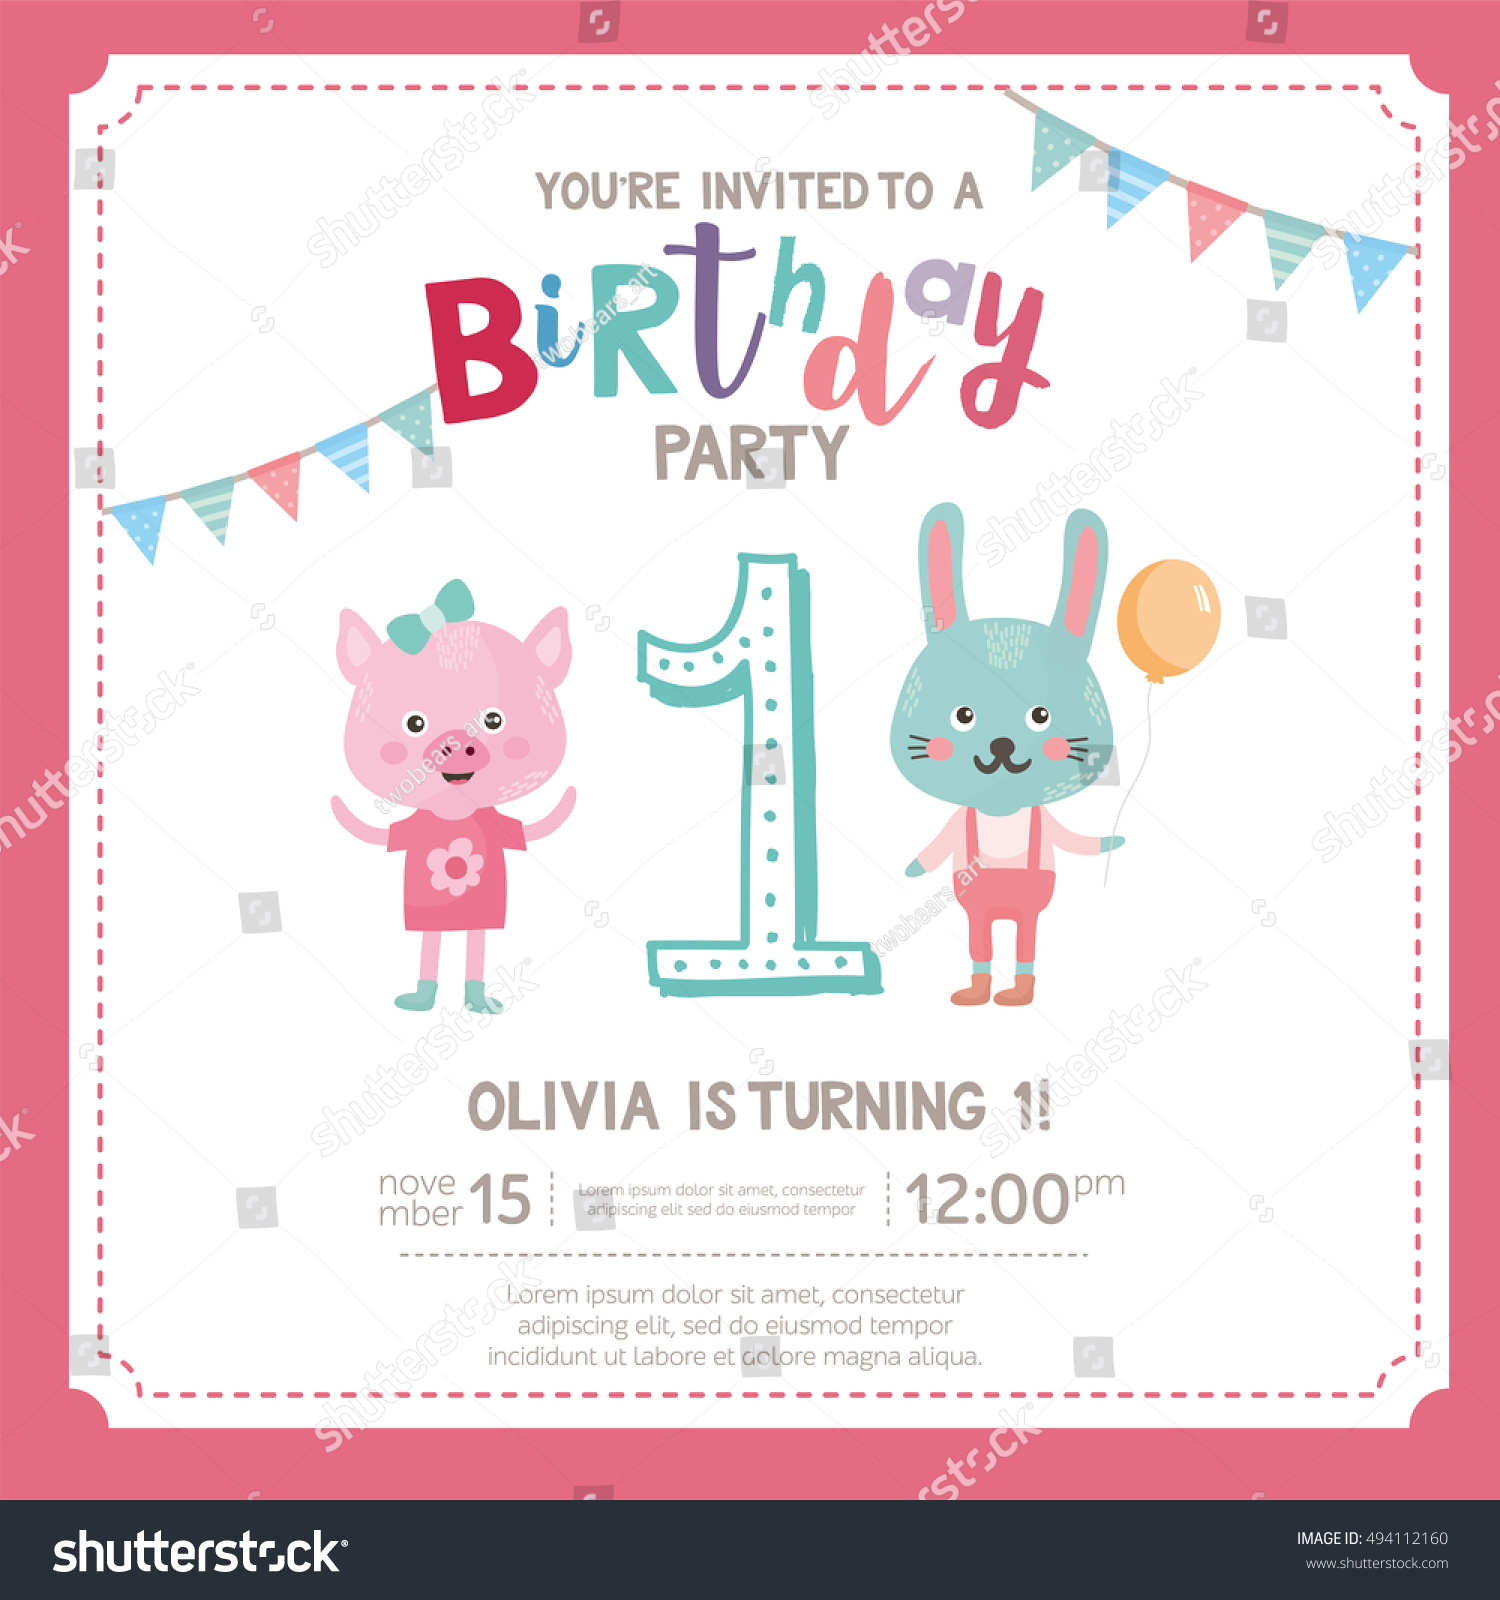 Greeting Card Design With Cute Pig And Rabbit Happy Birthday Invitation Template For One Year